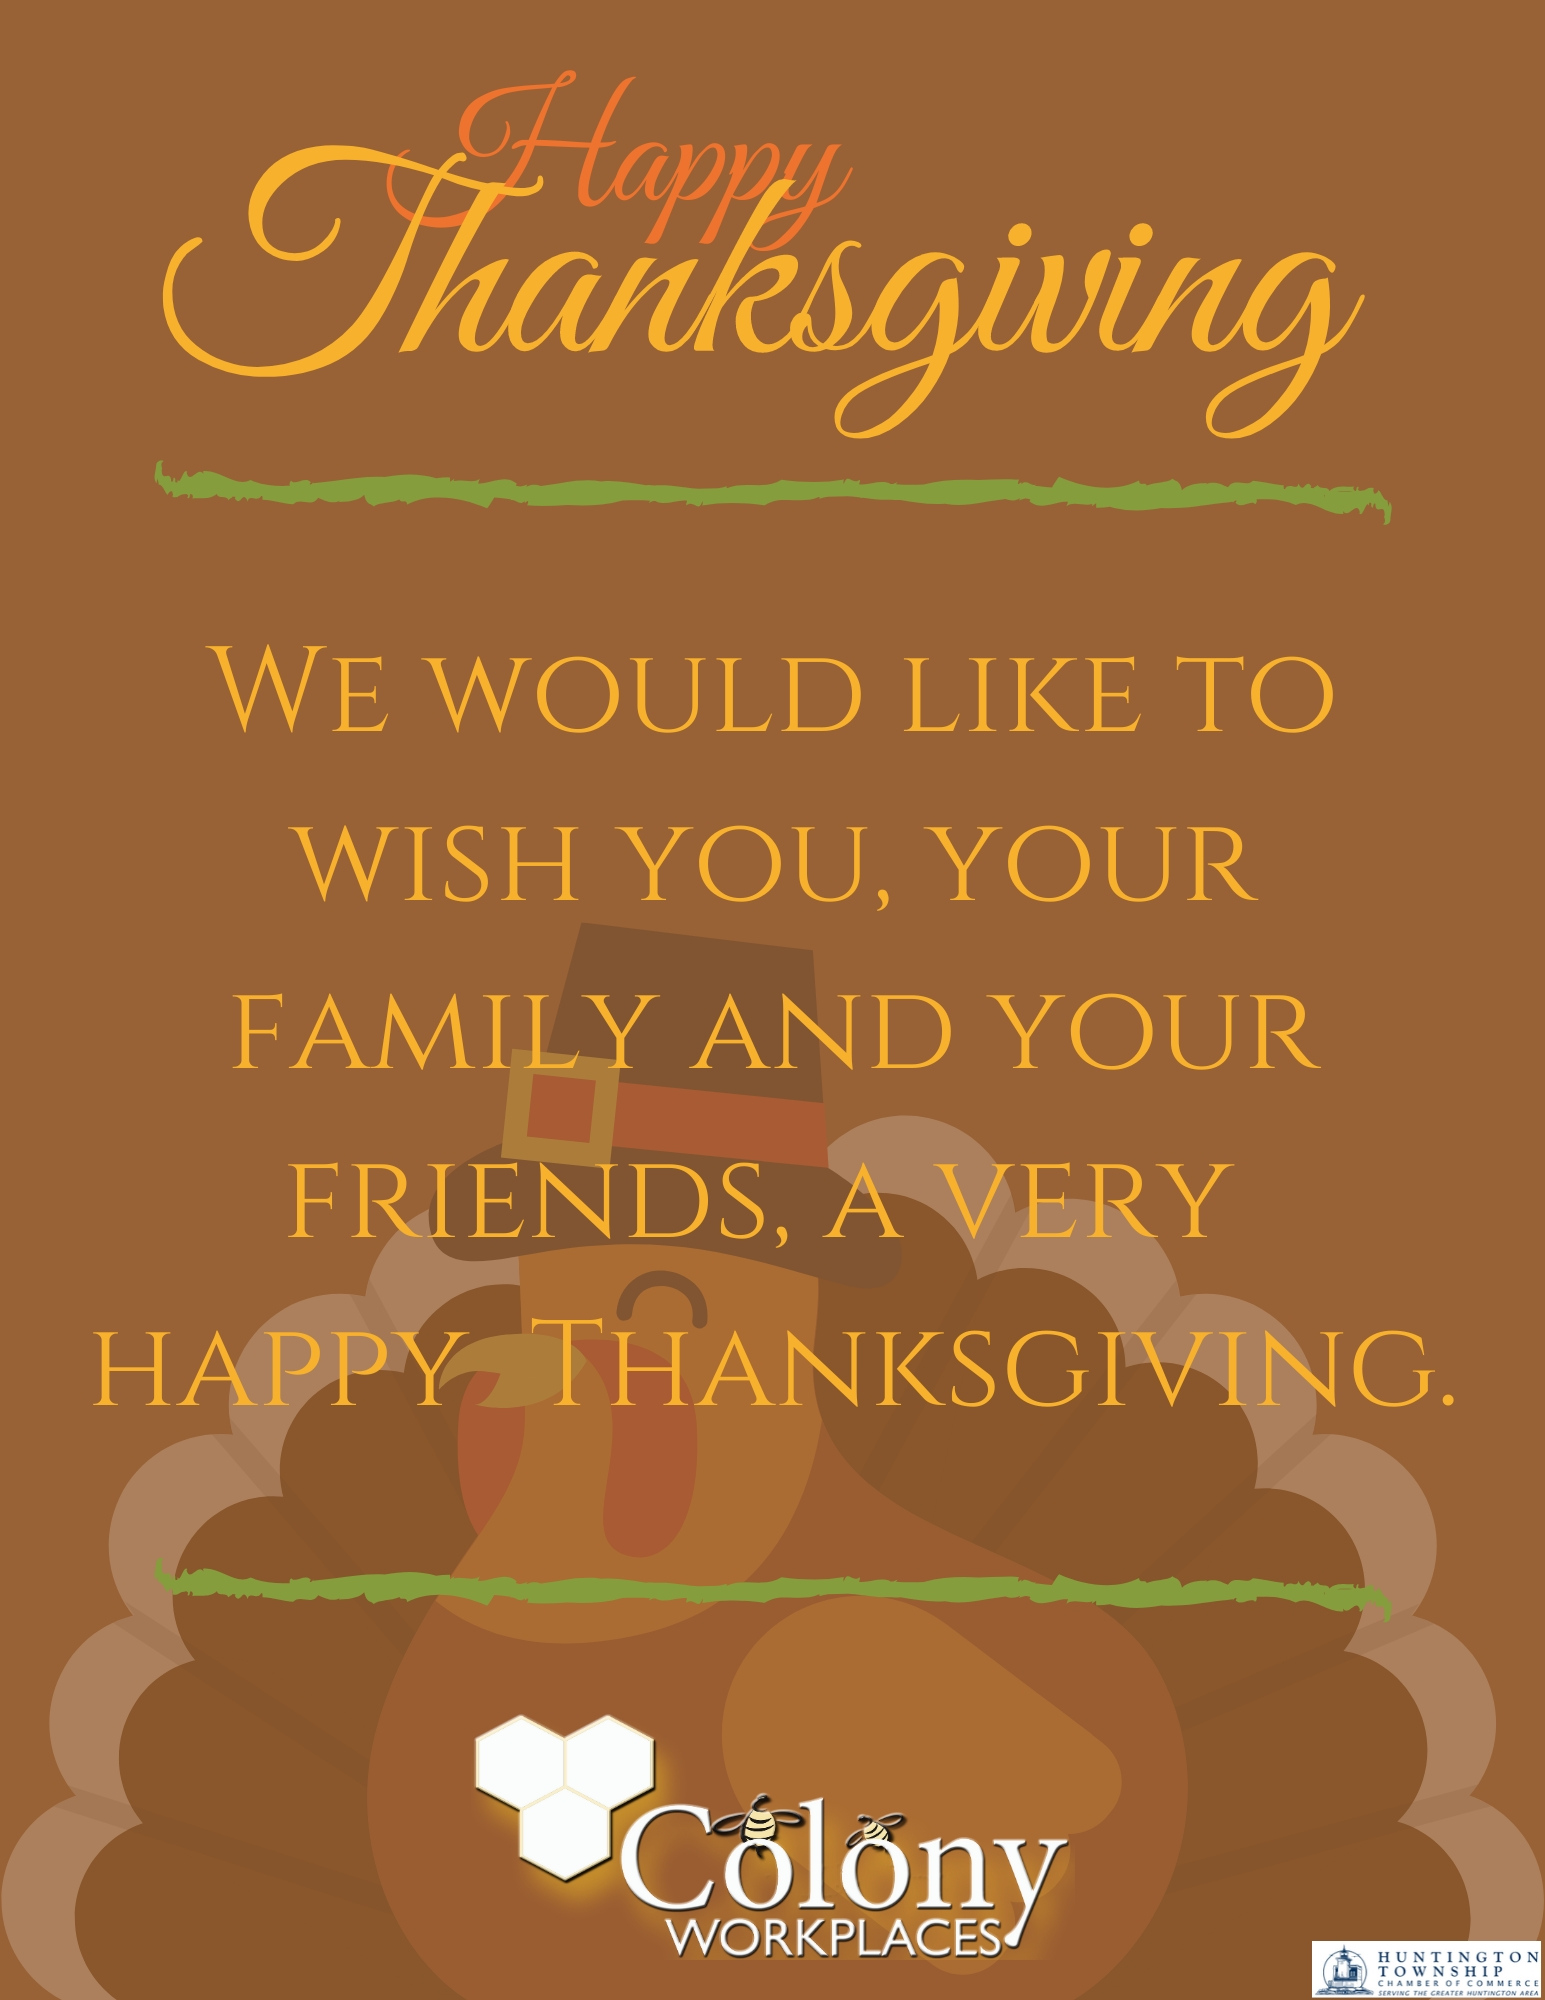 Happy Thanksgiving from Colony Workplaces